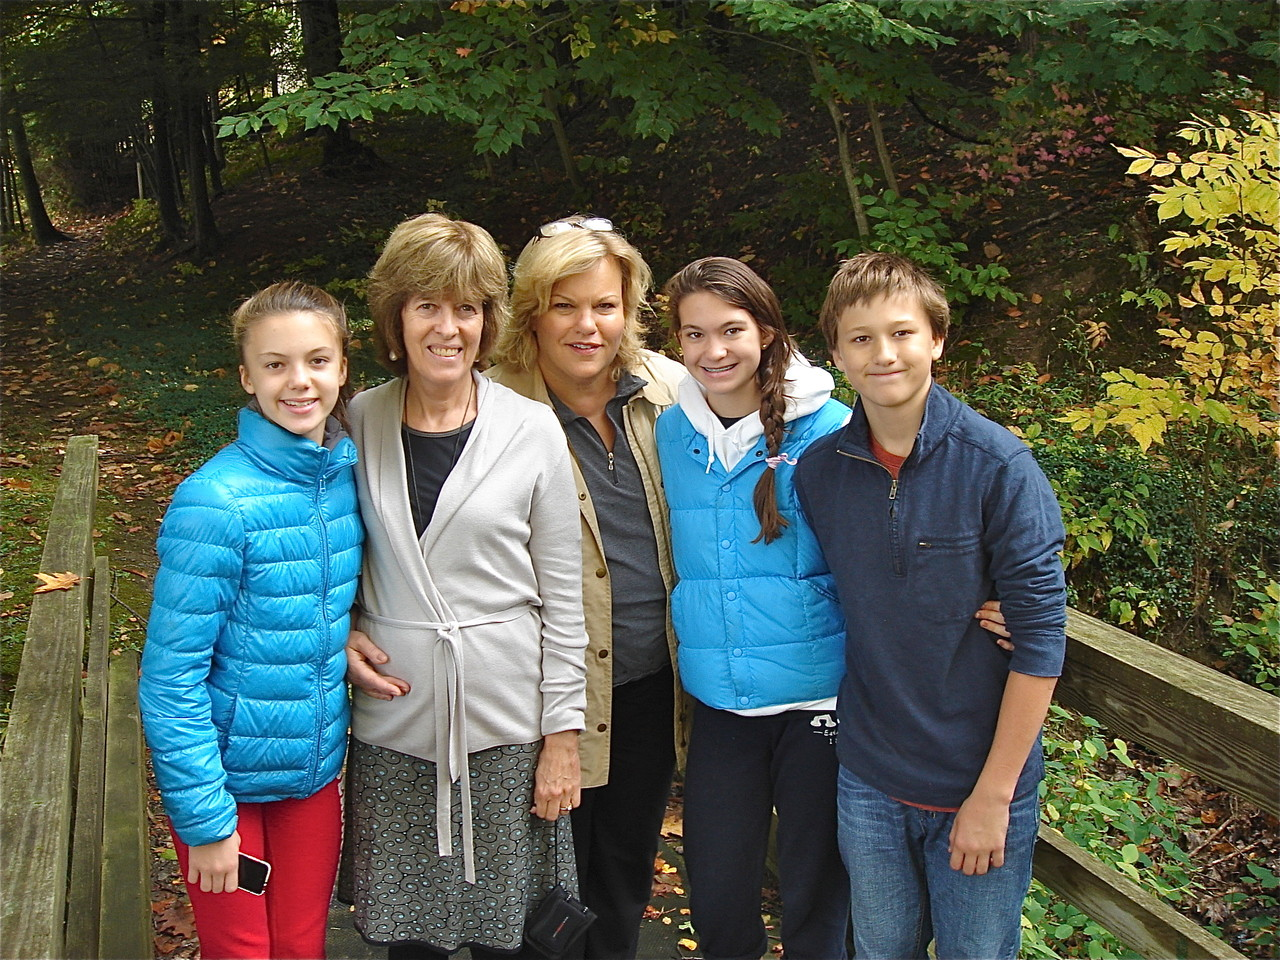 Kate, Nancy Hynes, Celeste, Ellie, & Jack Skaneateles Lake, Oct. 2012